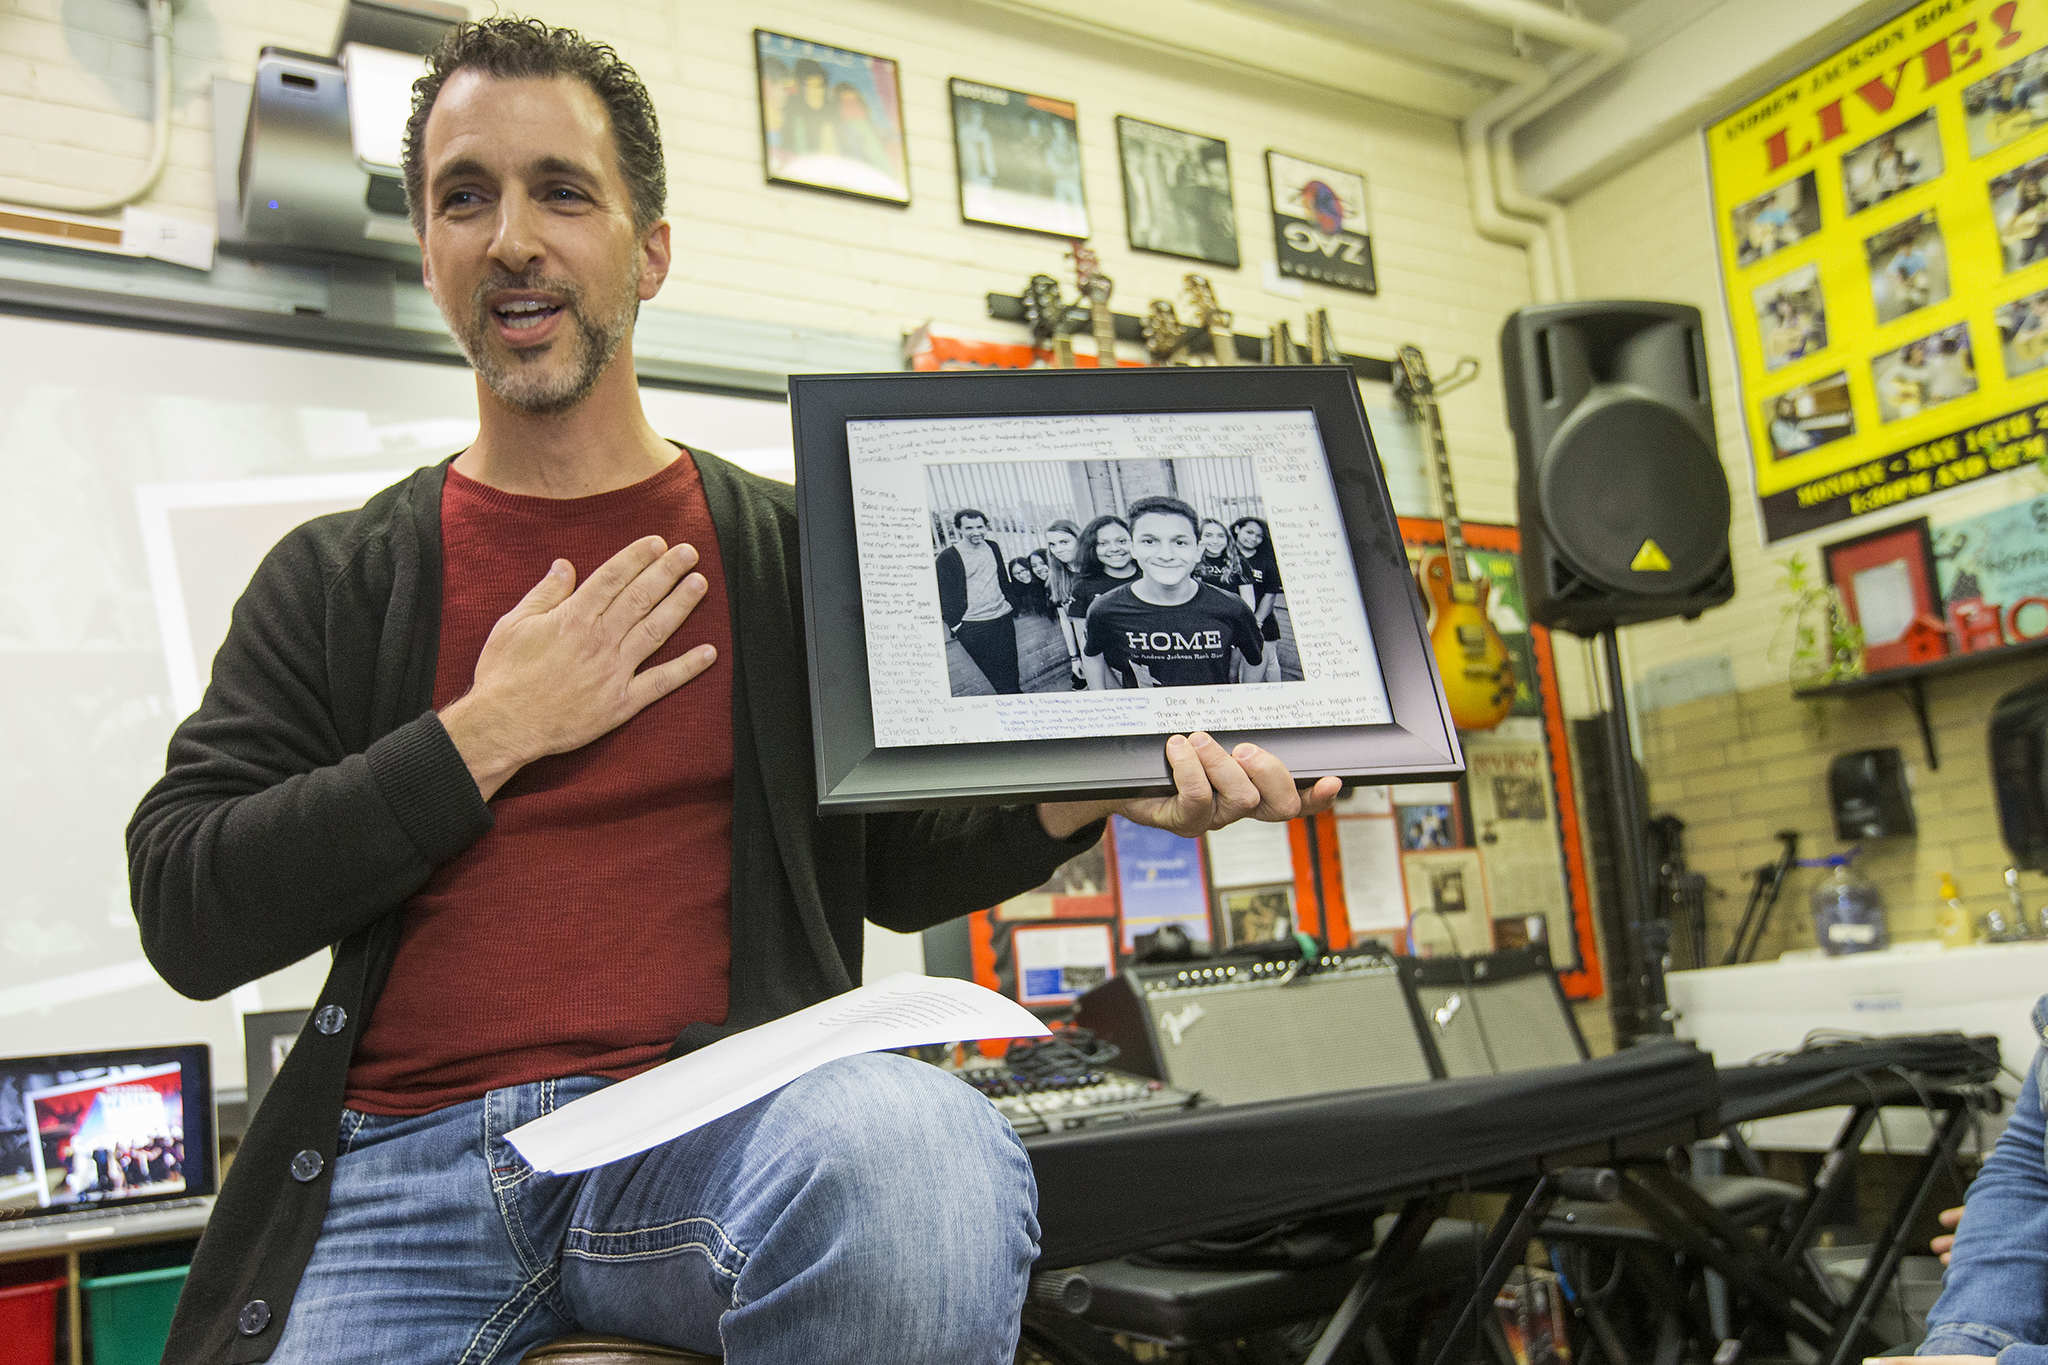 Music teacher Chris Argerakis holds up a photo of HOME as he talks about the band. HOME, the acclaimed, improbable rock band made up of students from Jackson Elementary, a Philadelphia public school, is the subject of a new documentary that airs on WHYY this week. We attend the screening at Jackson Elementary ion Oct. 26, 2017.